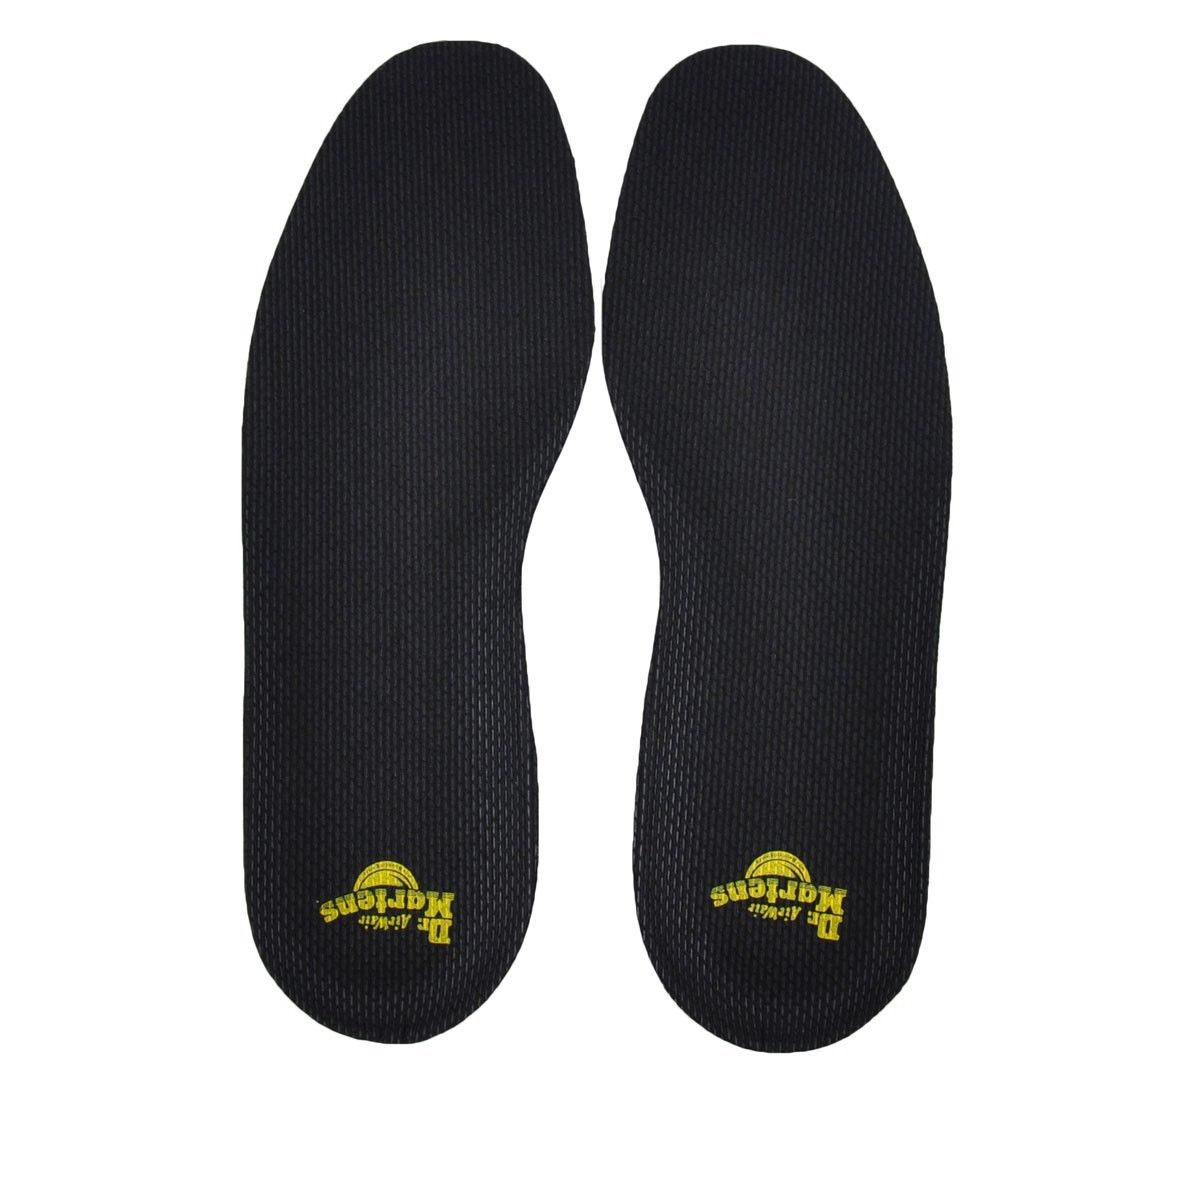 Comfort Insole - Accessories